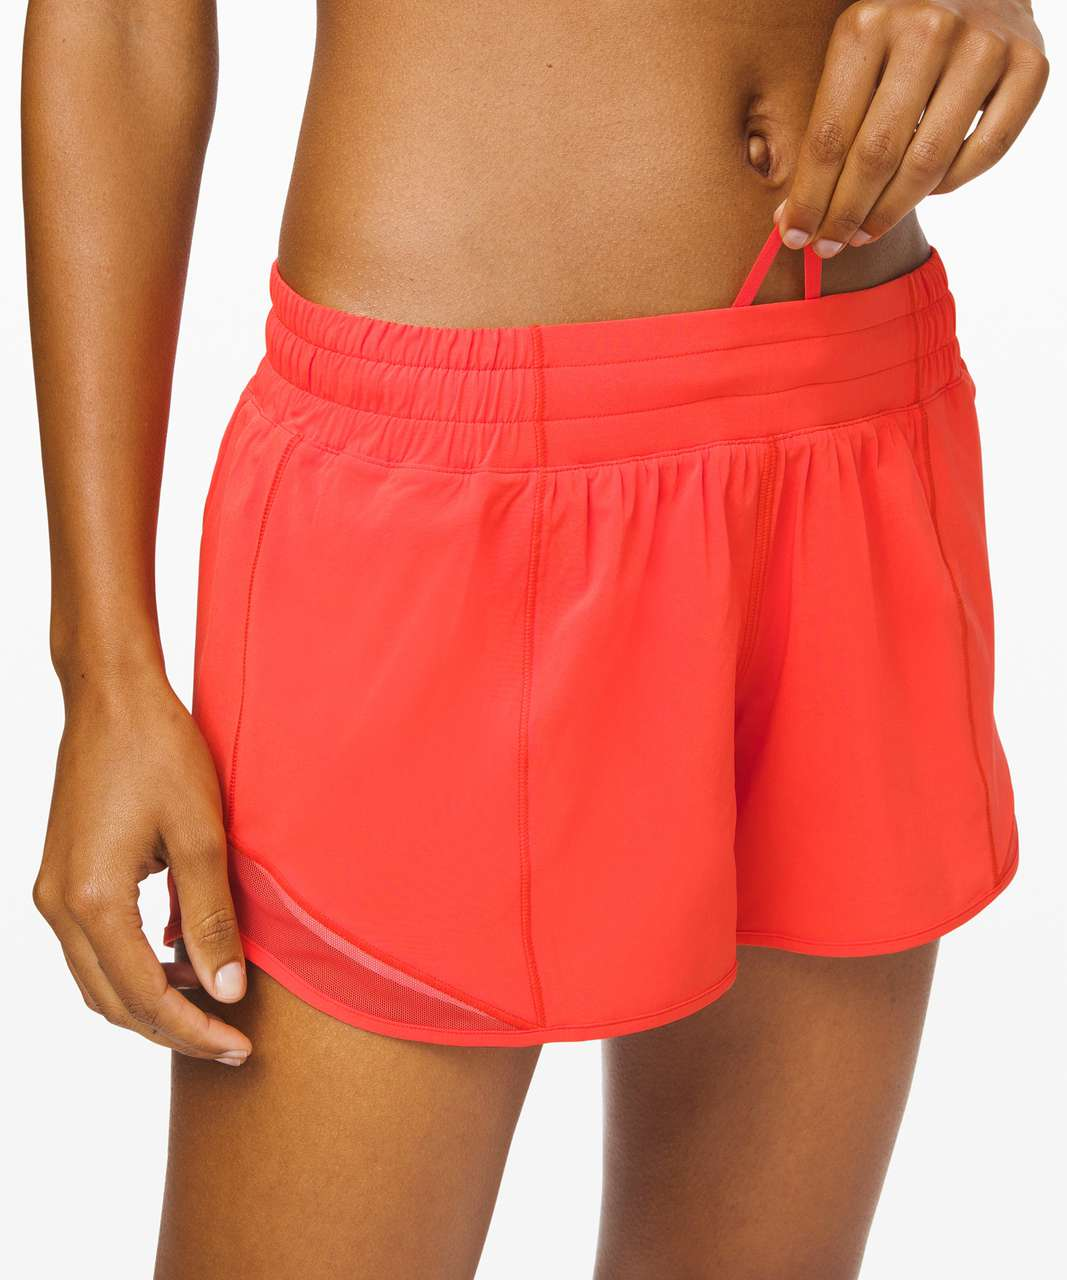 "Lululemon Hotty Hot Short II *Long 4"" - Thermal Red"